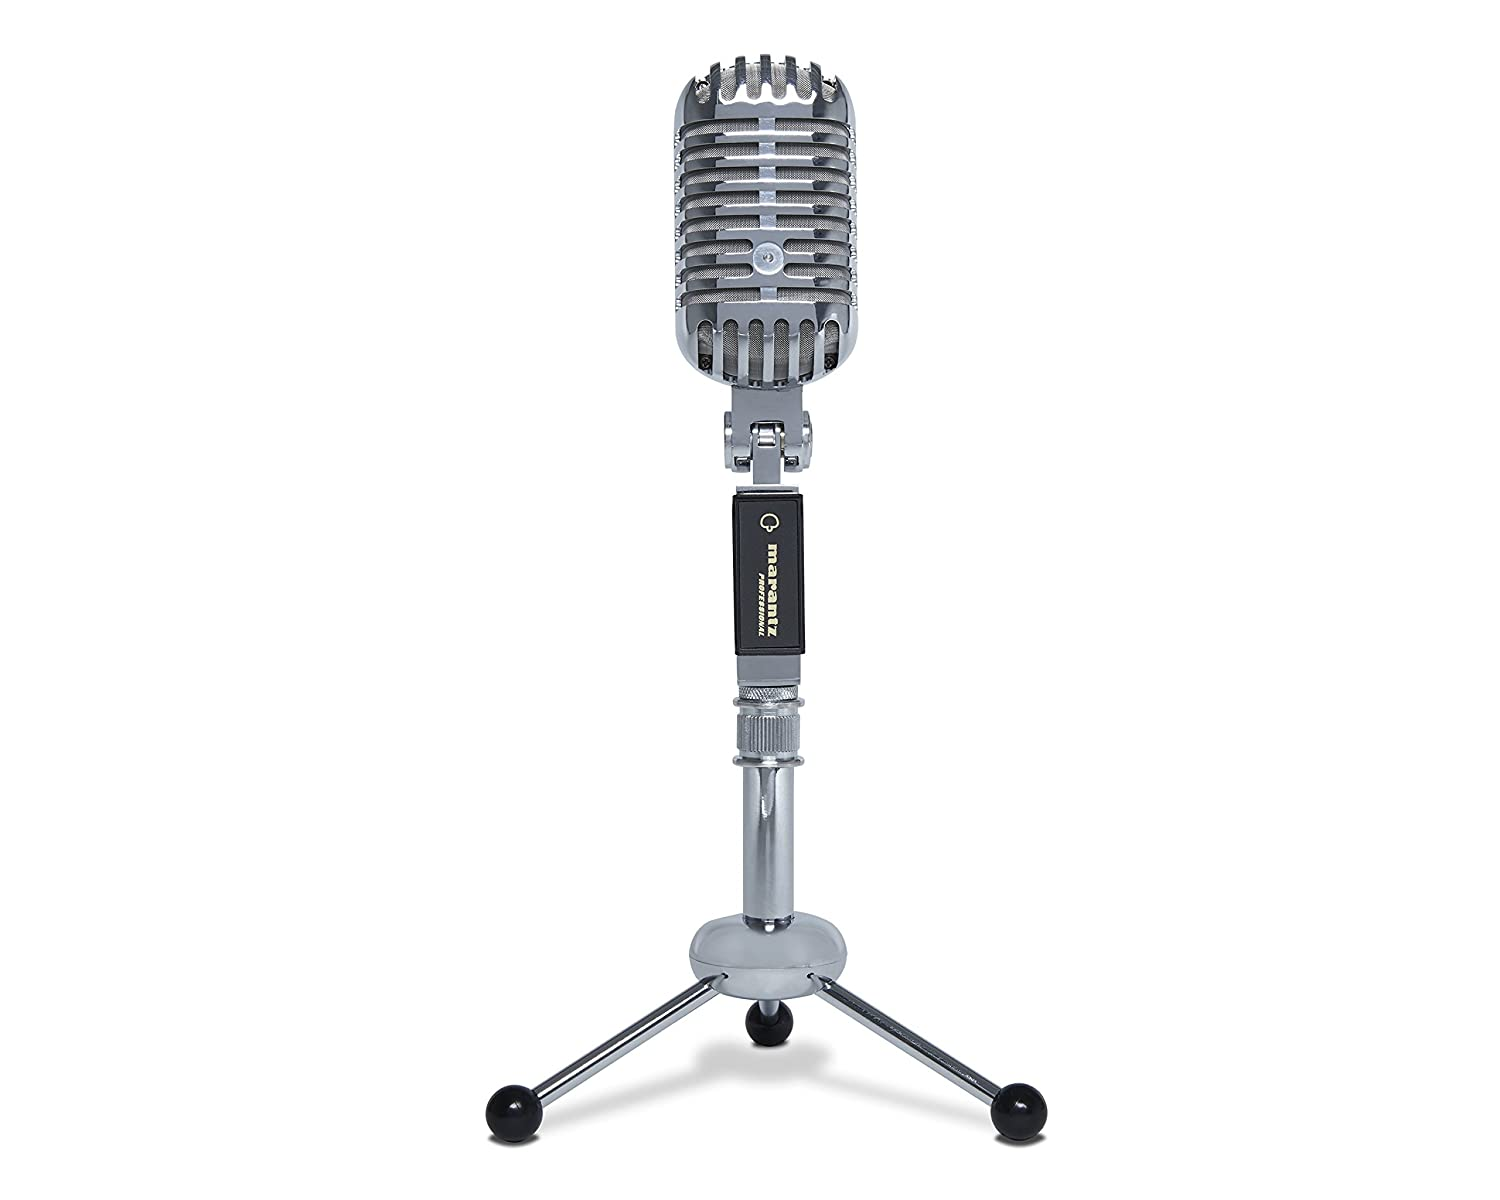 Marantz Professional Retro Cast - USB Microphone with Vintage Styling | Cardioid pickup pattern | USB output (Perfect for Podcasting) | Wide-range 40-16kHz frequency | Tripod & Cable Included